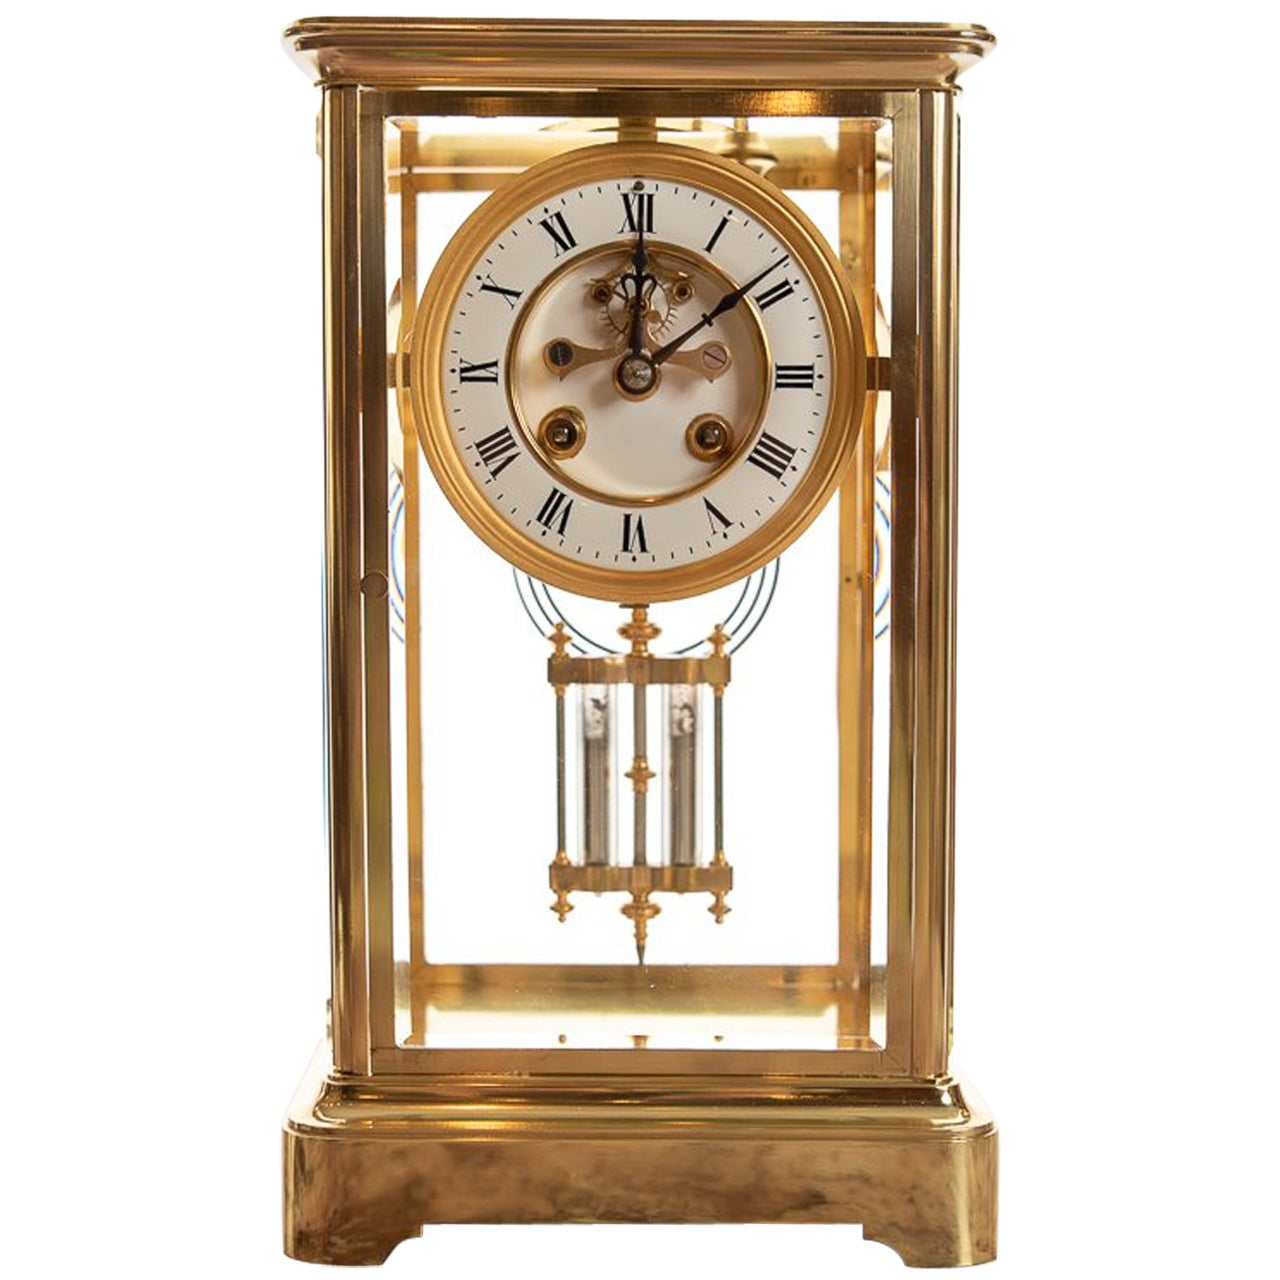 French 8 Day Striking Four Glass Clock by Japy Freres, Paris, Late 19th Century